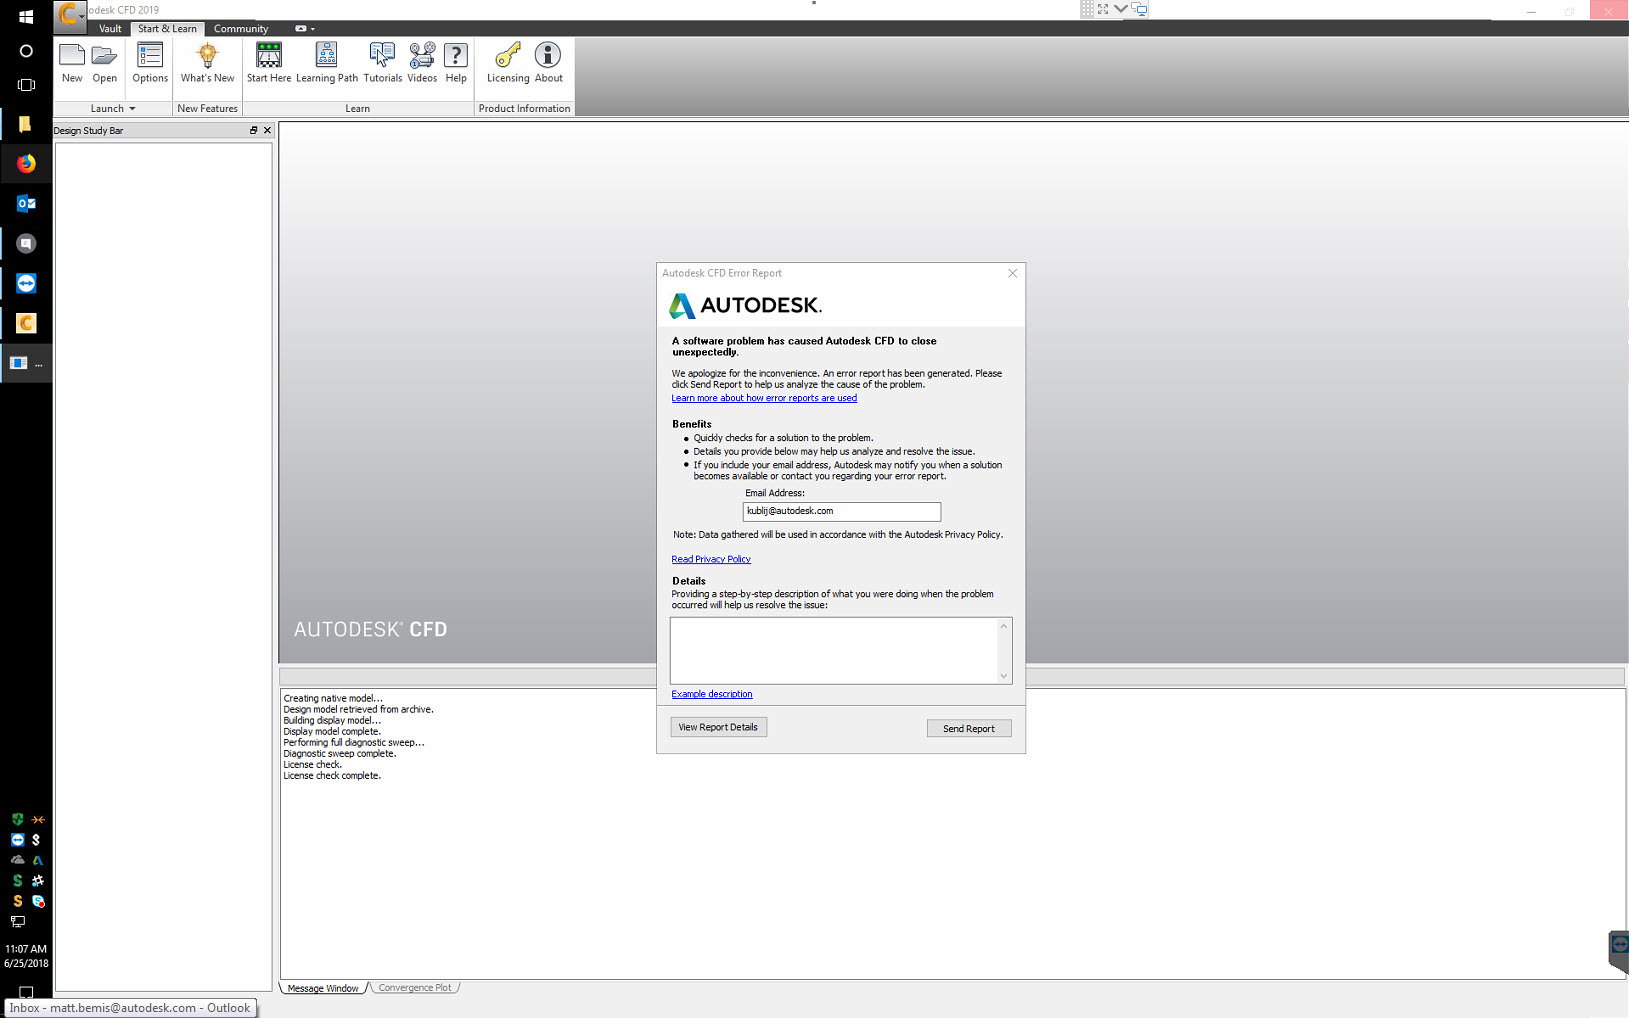 Autodesk CFD crashes with a CER while opening a project that